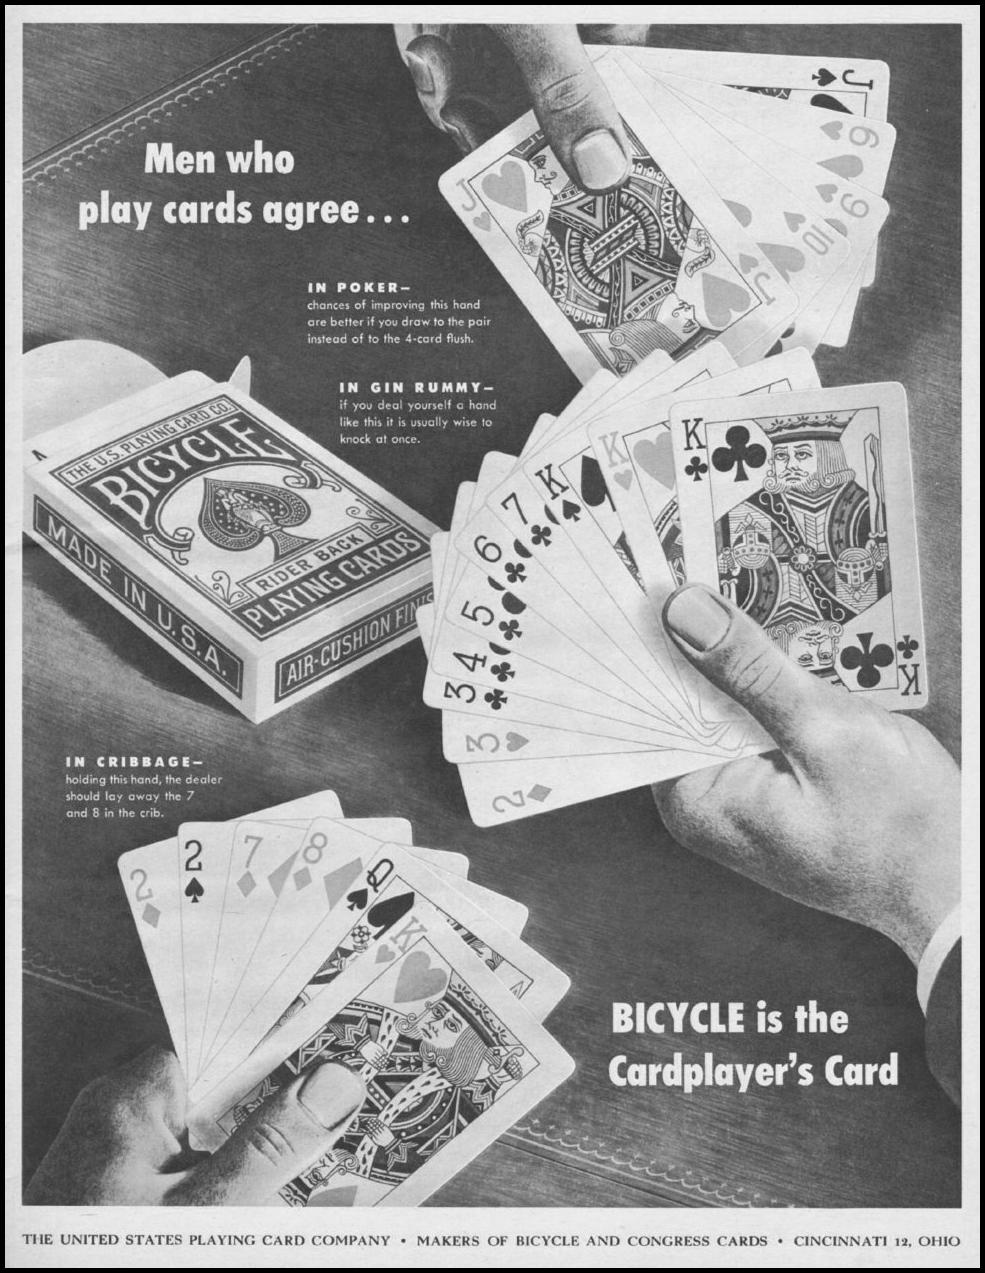 BICYCLE PLAYING CARDS LIFE 11/25/1946 p. 7